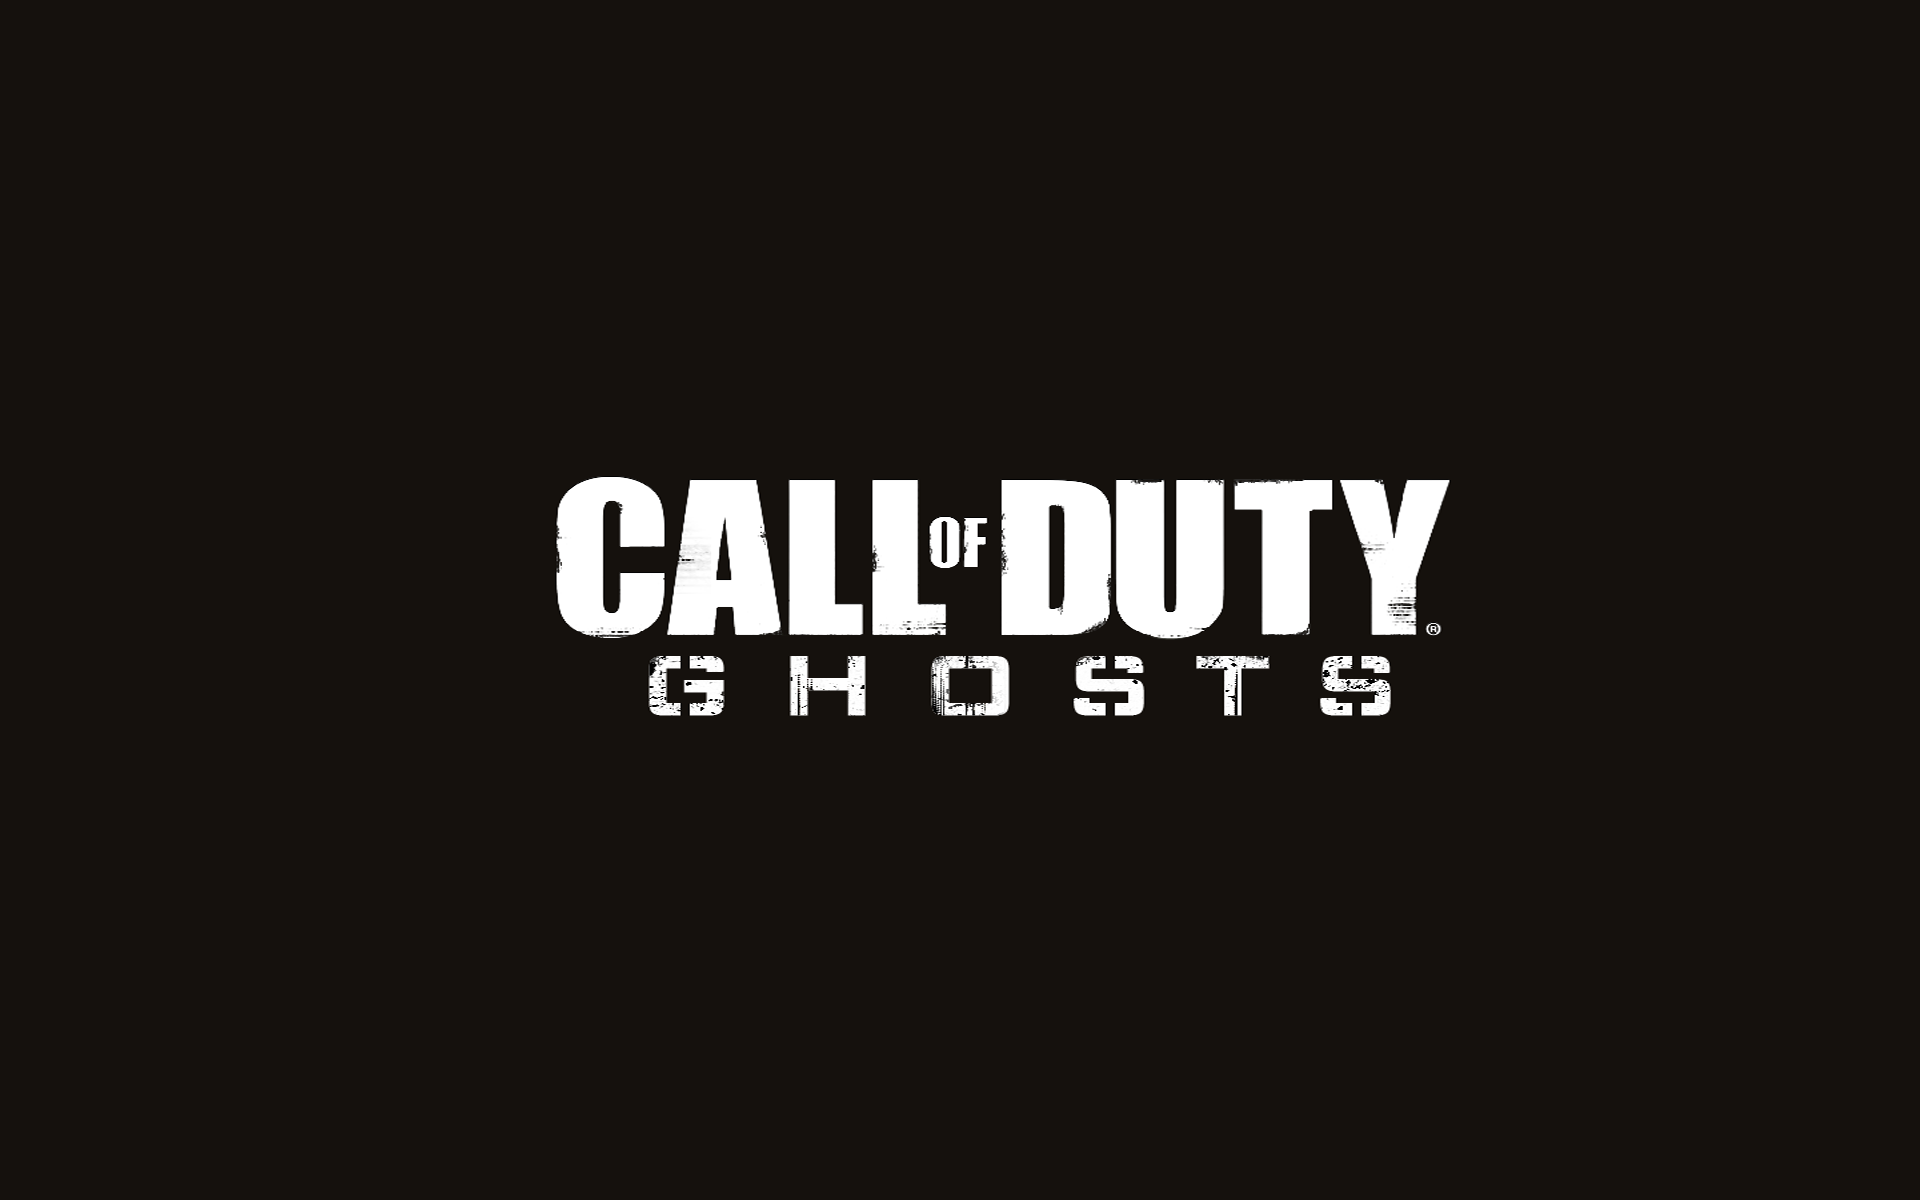 cod hd wallpapers